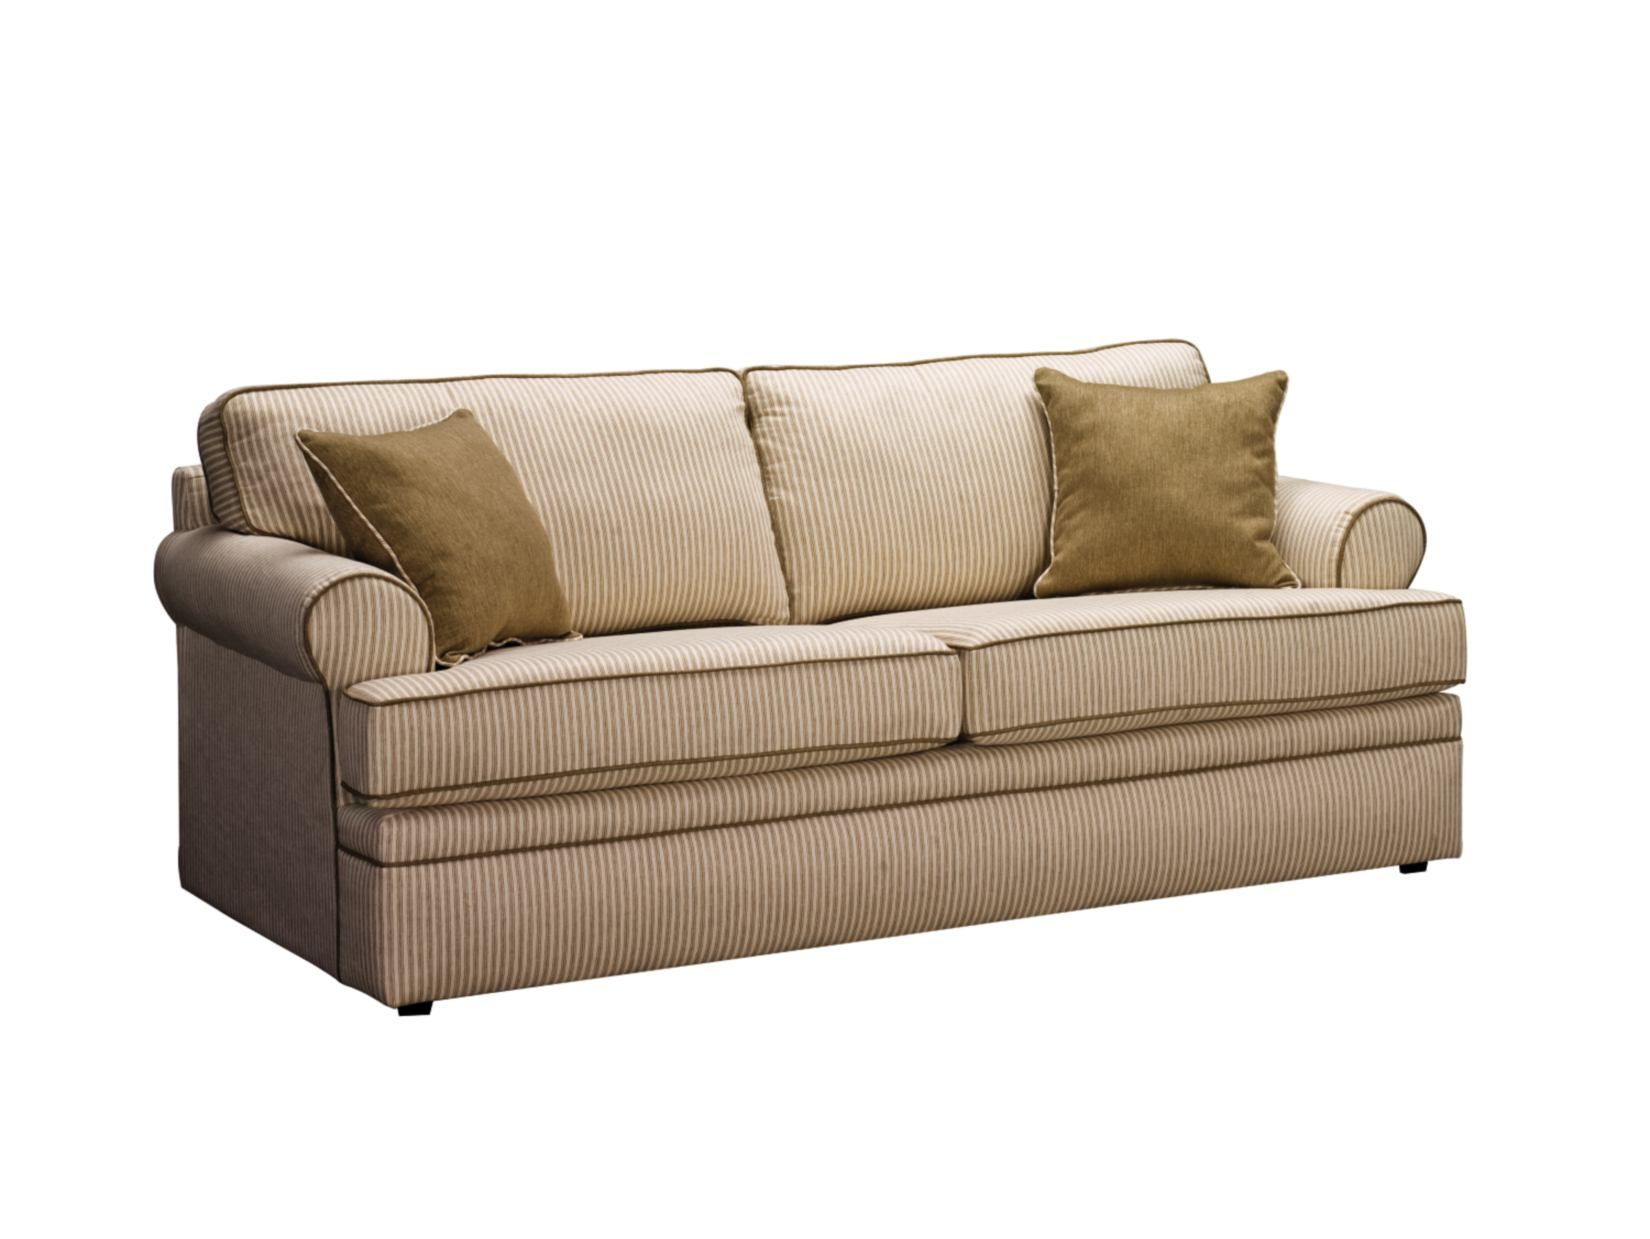 Incroyable Kendall Stripe Queen Sleeper   Value City Furniture $699